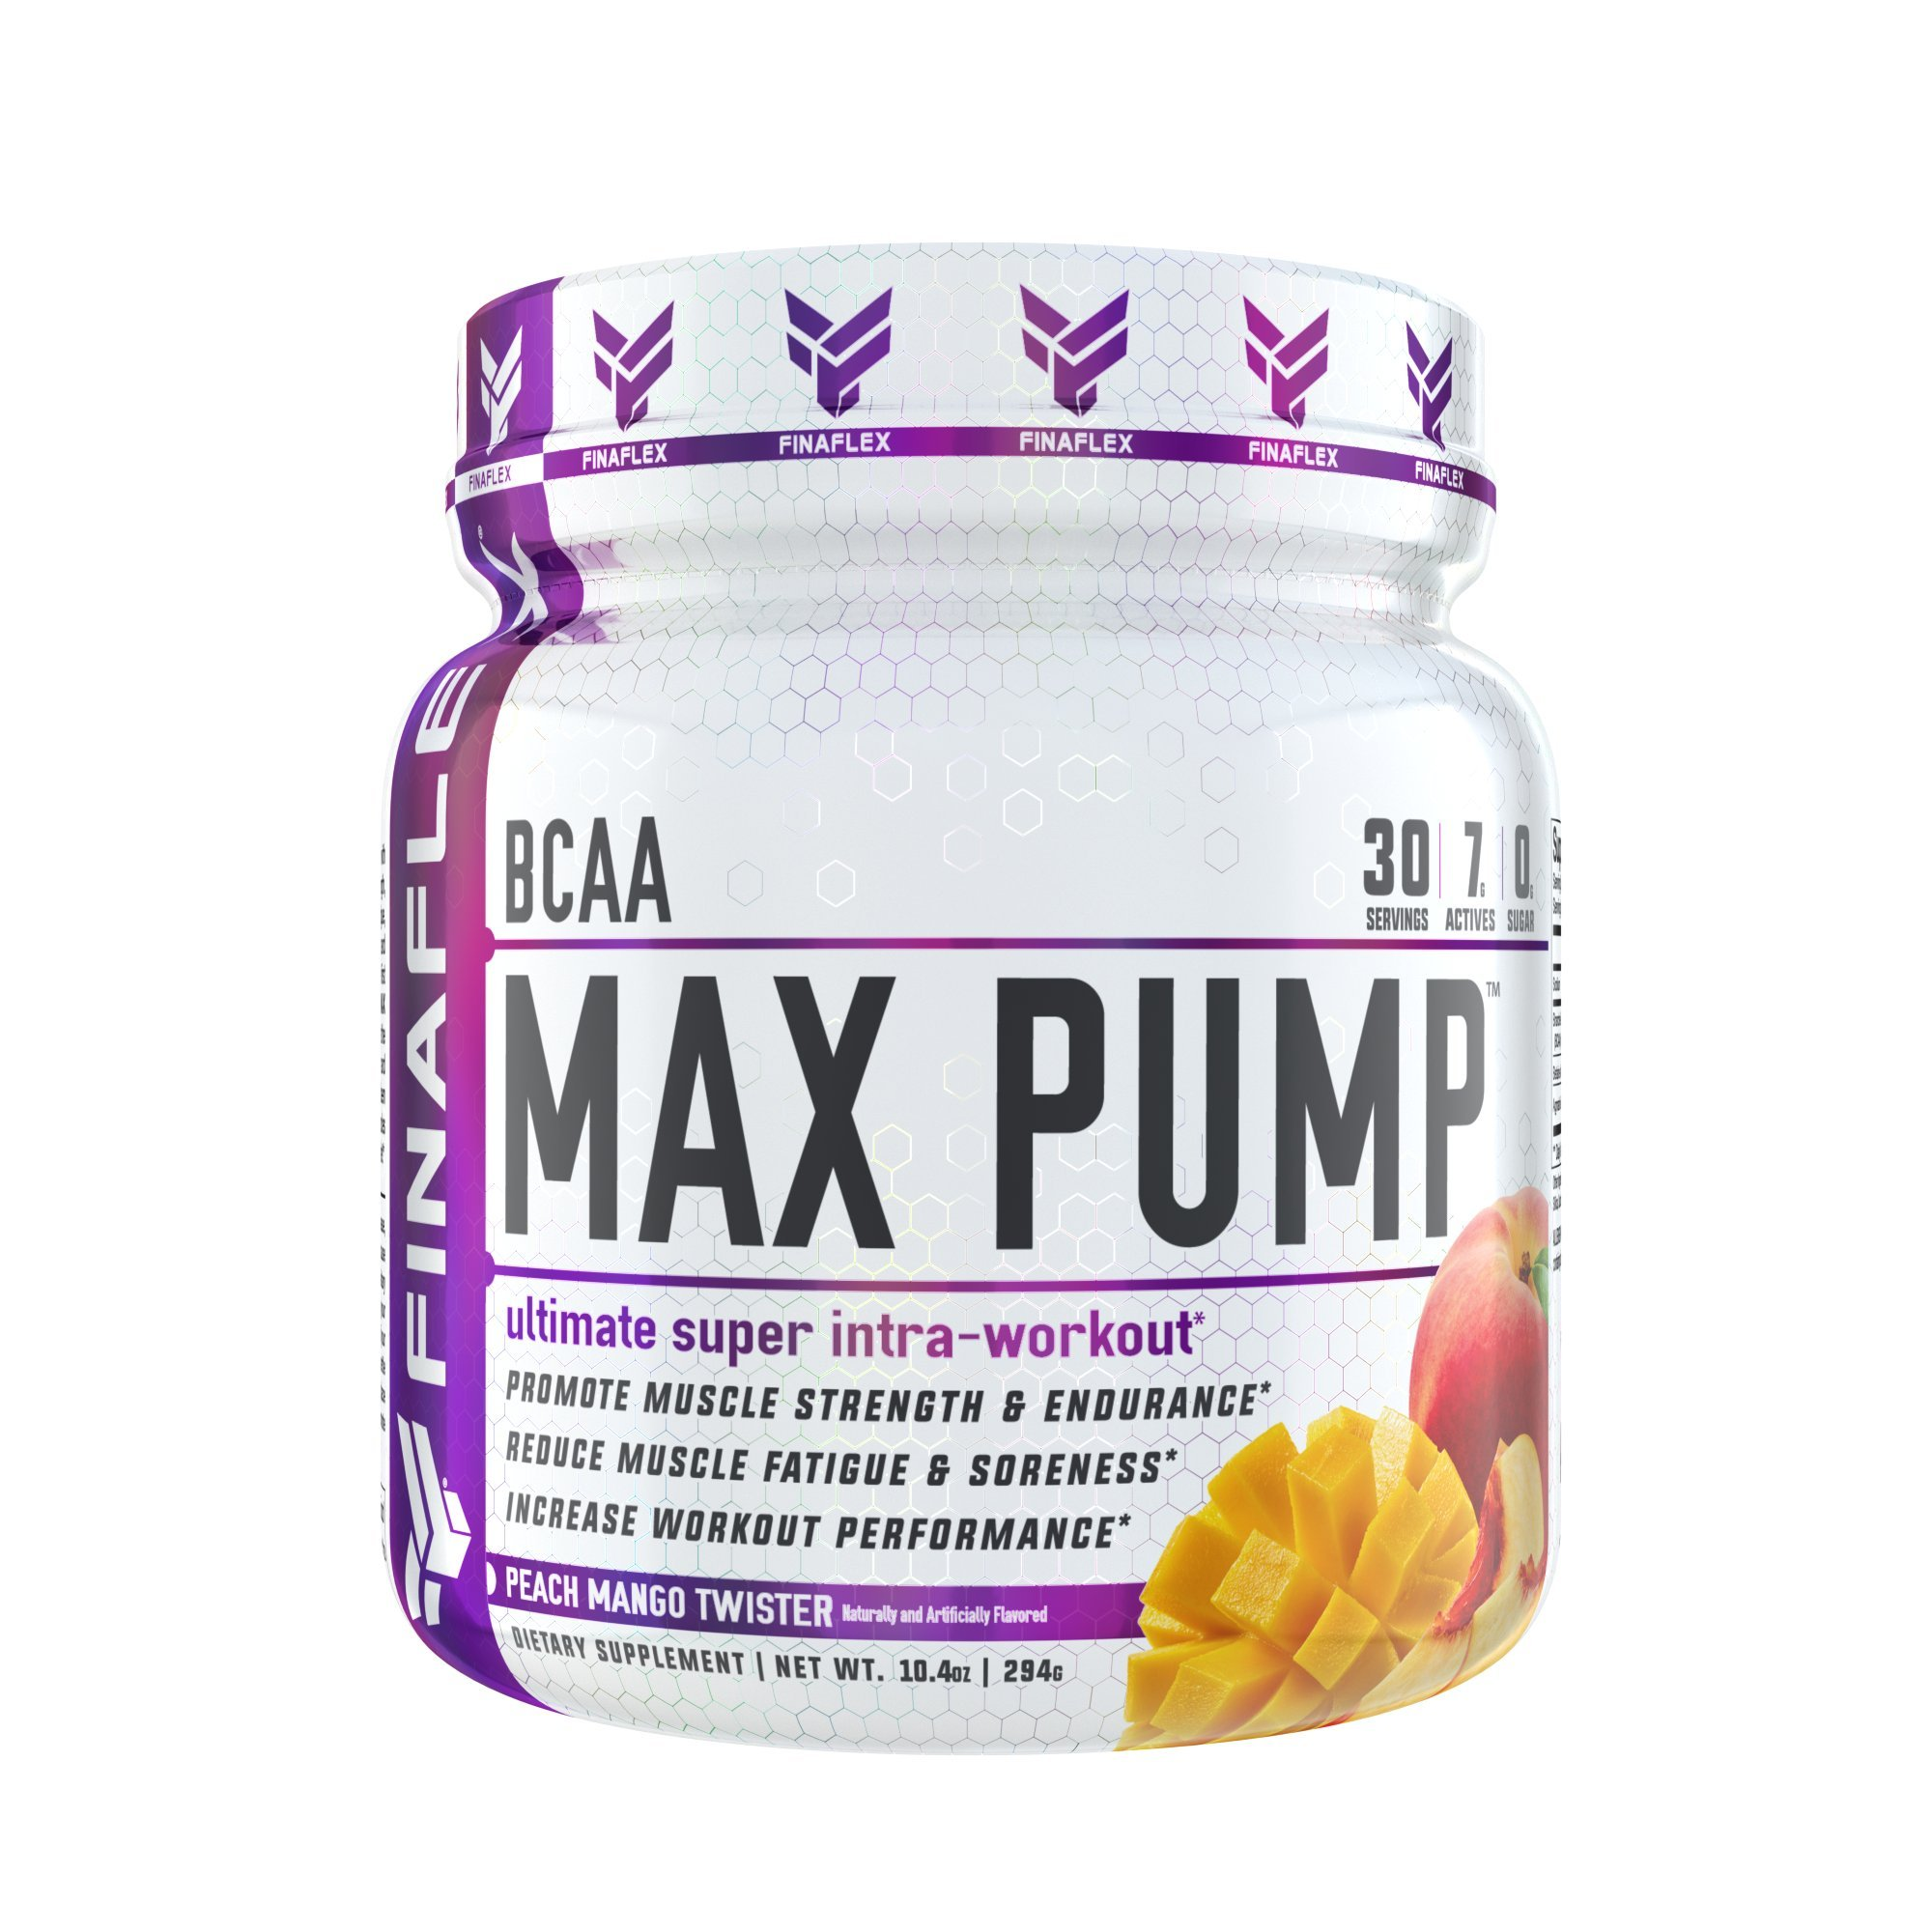 BCAA Max Pump, 30 Servings, Branched Chain Amino Acids Plus Pump, Increase  Strength, Endurance, and Blood Flow to Muscles, Extend Workouts, Pre Intra